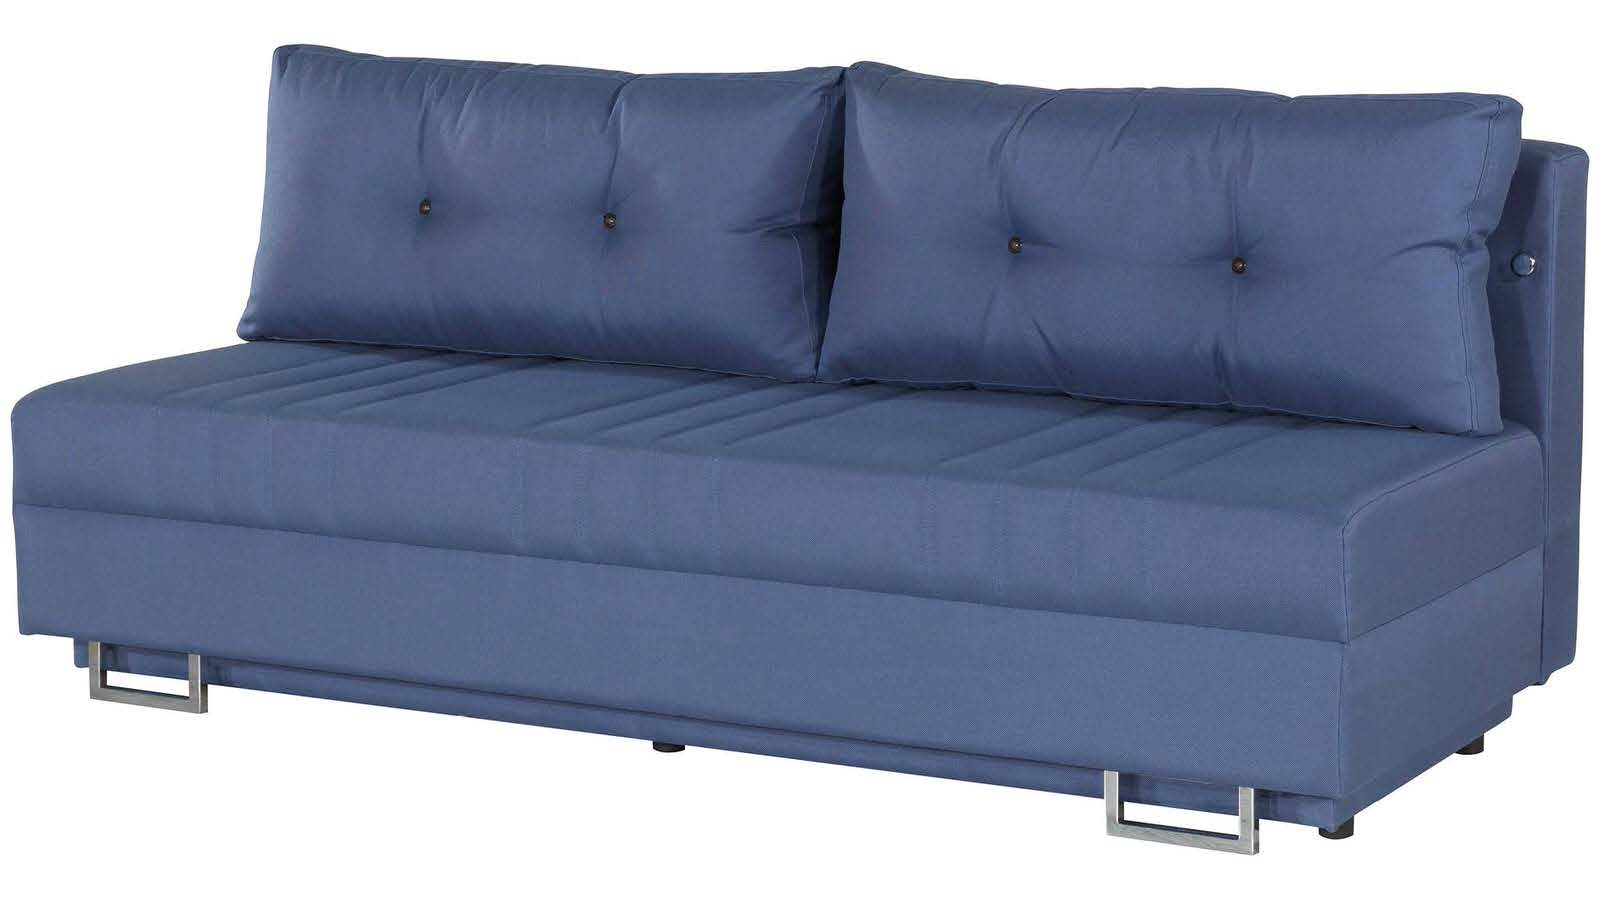 Flex motion blue queen sofa bed w storage by casamode for Sofa queen bed